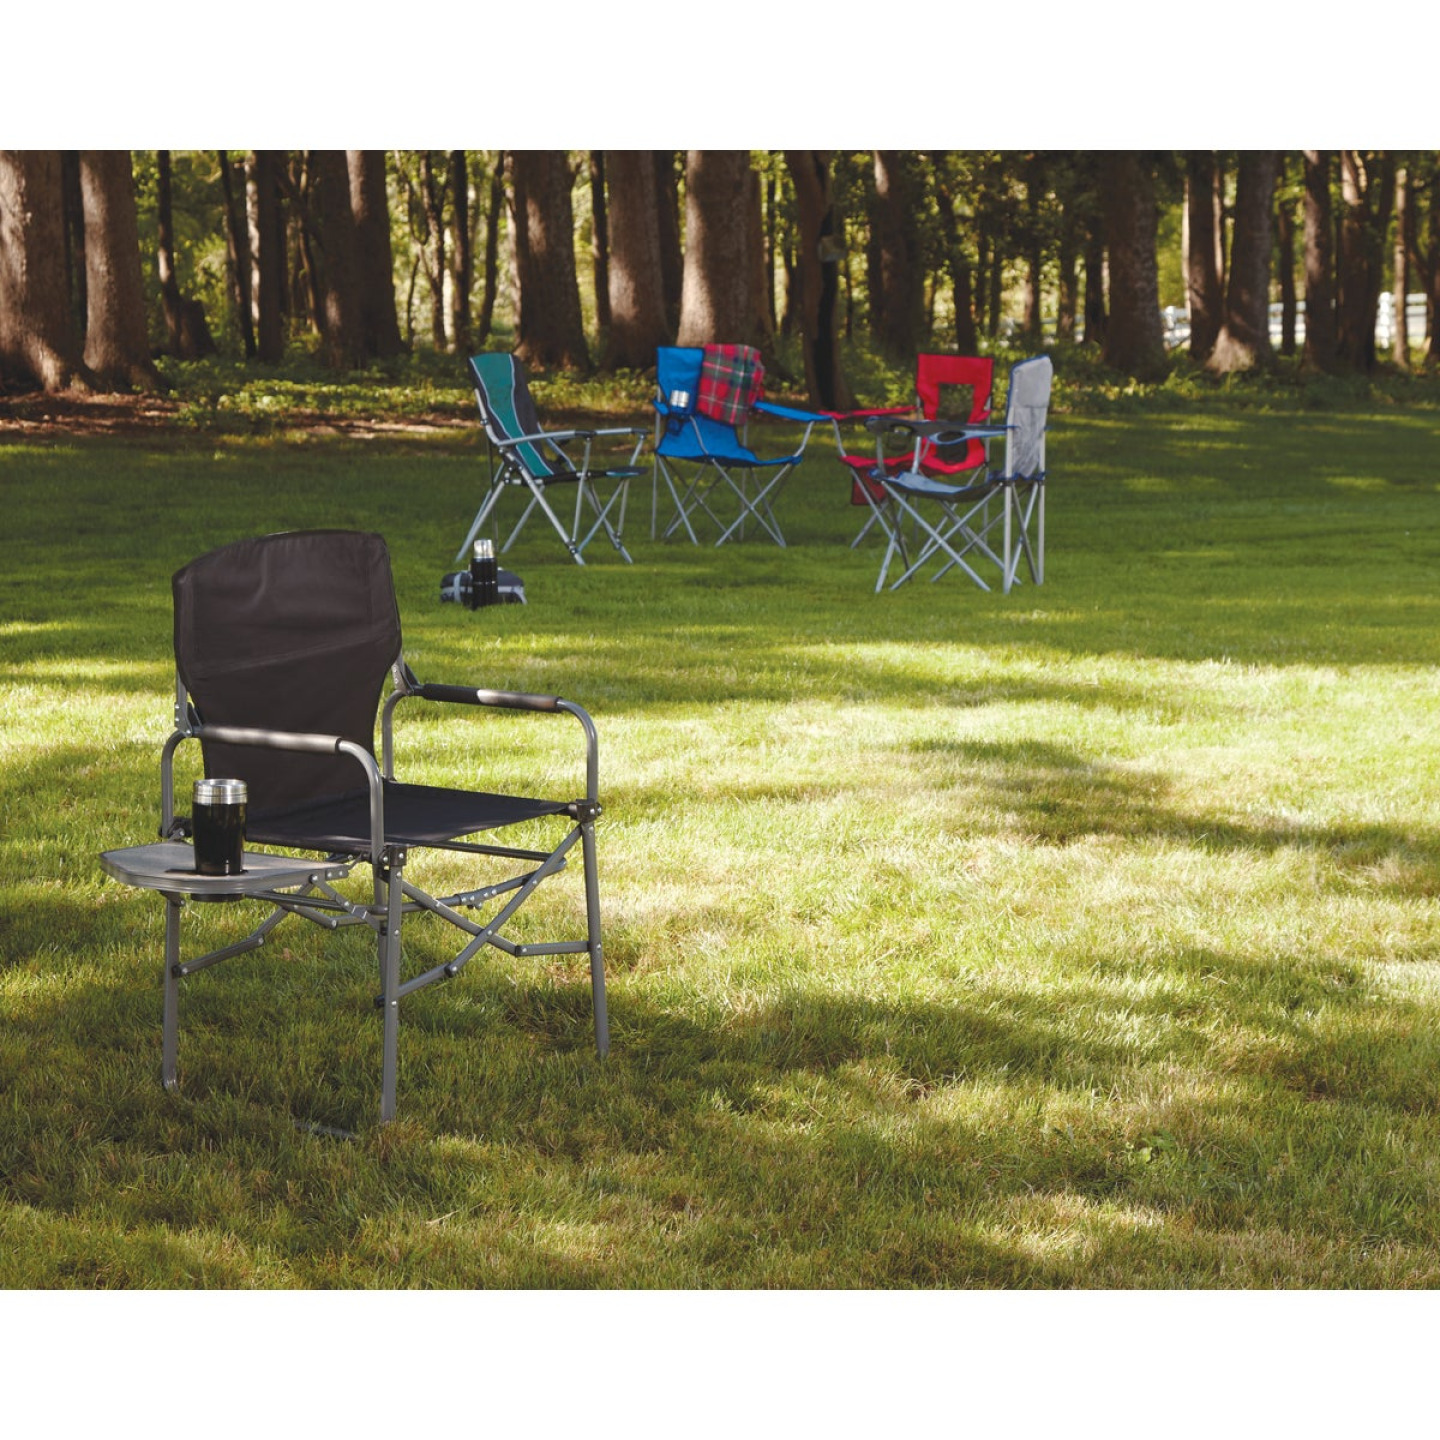 Outdoor Expressions Black Polyester Director Camp Folding Chair with Side Table Image 2